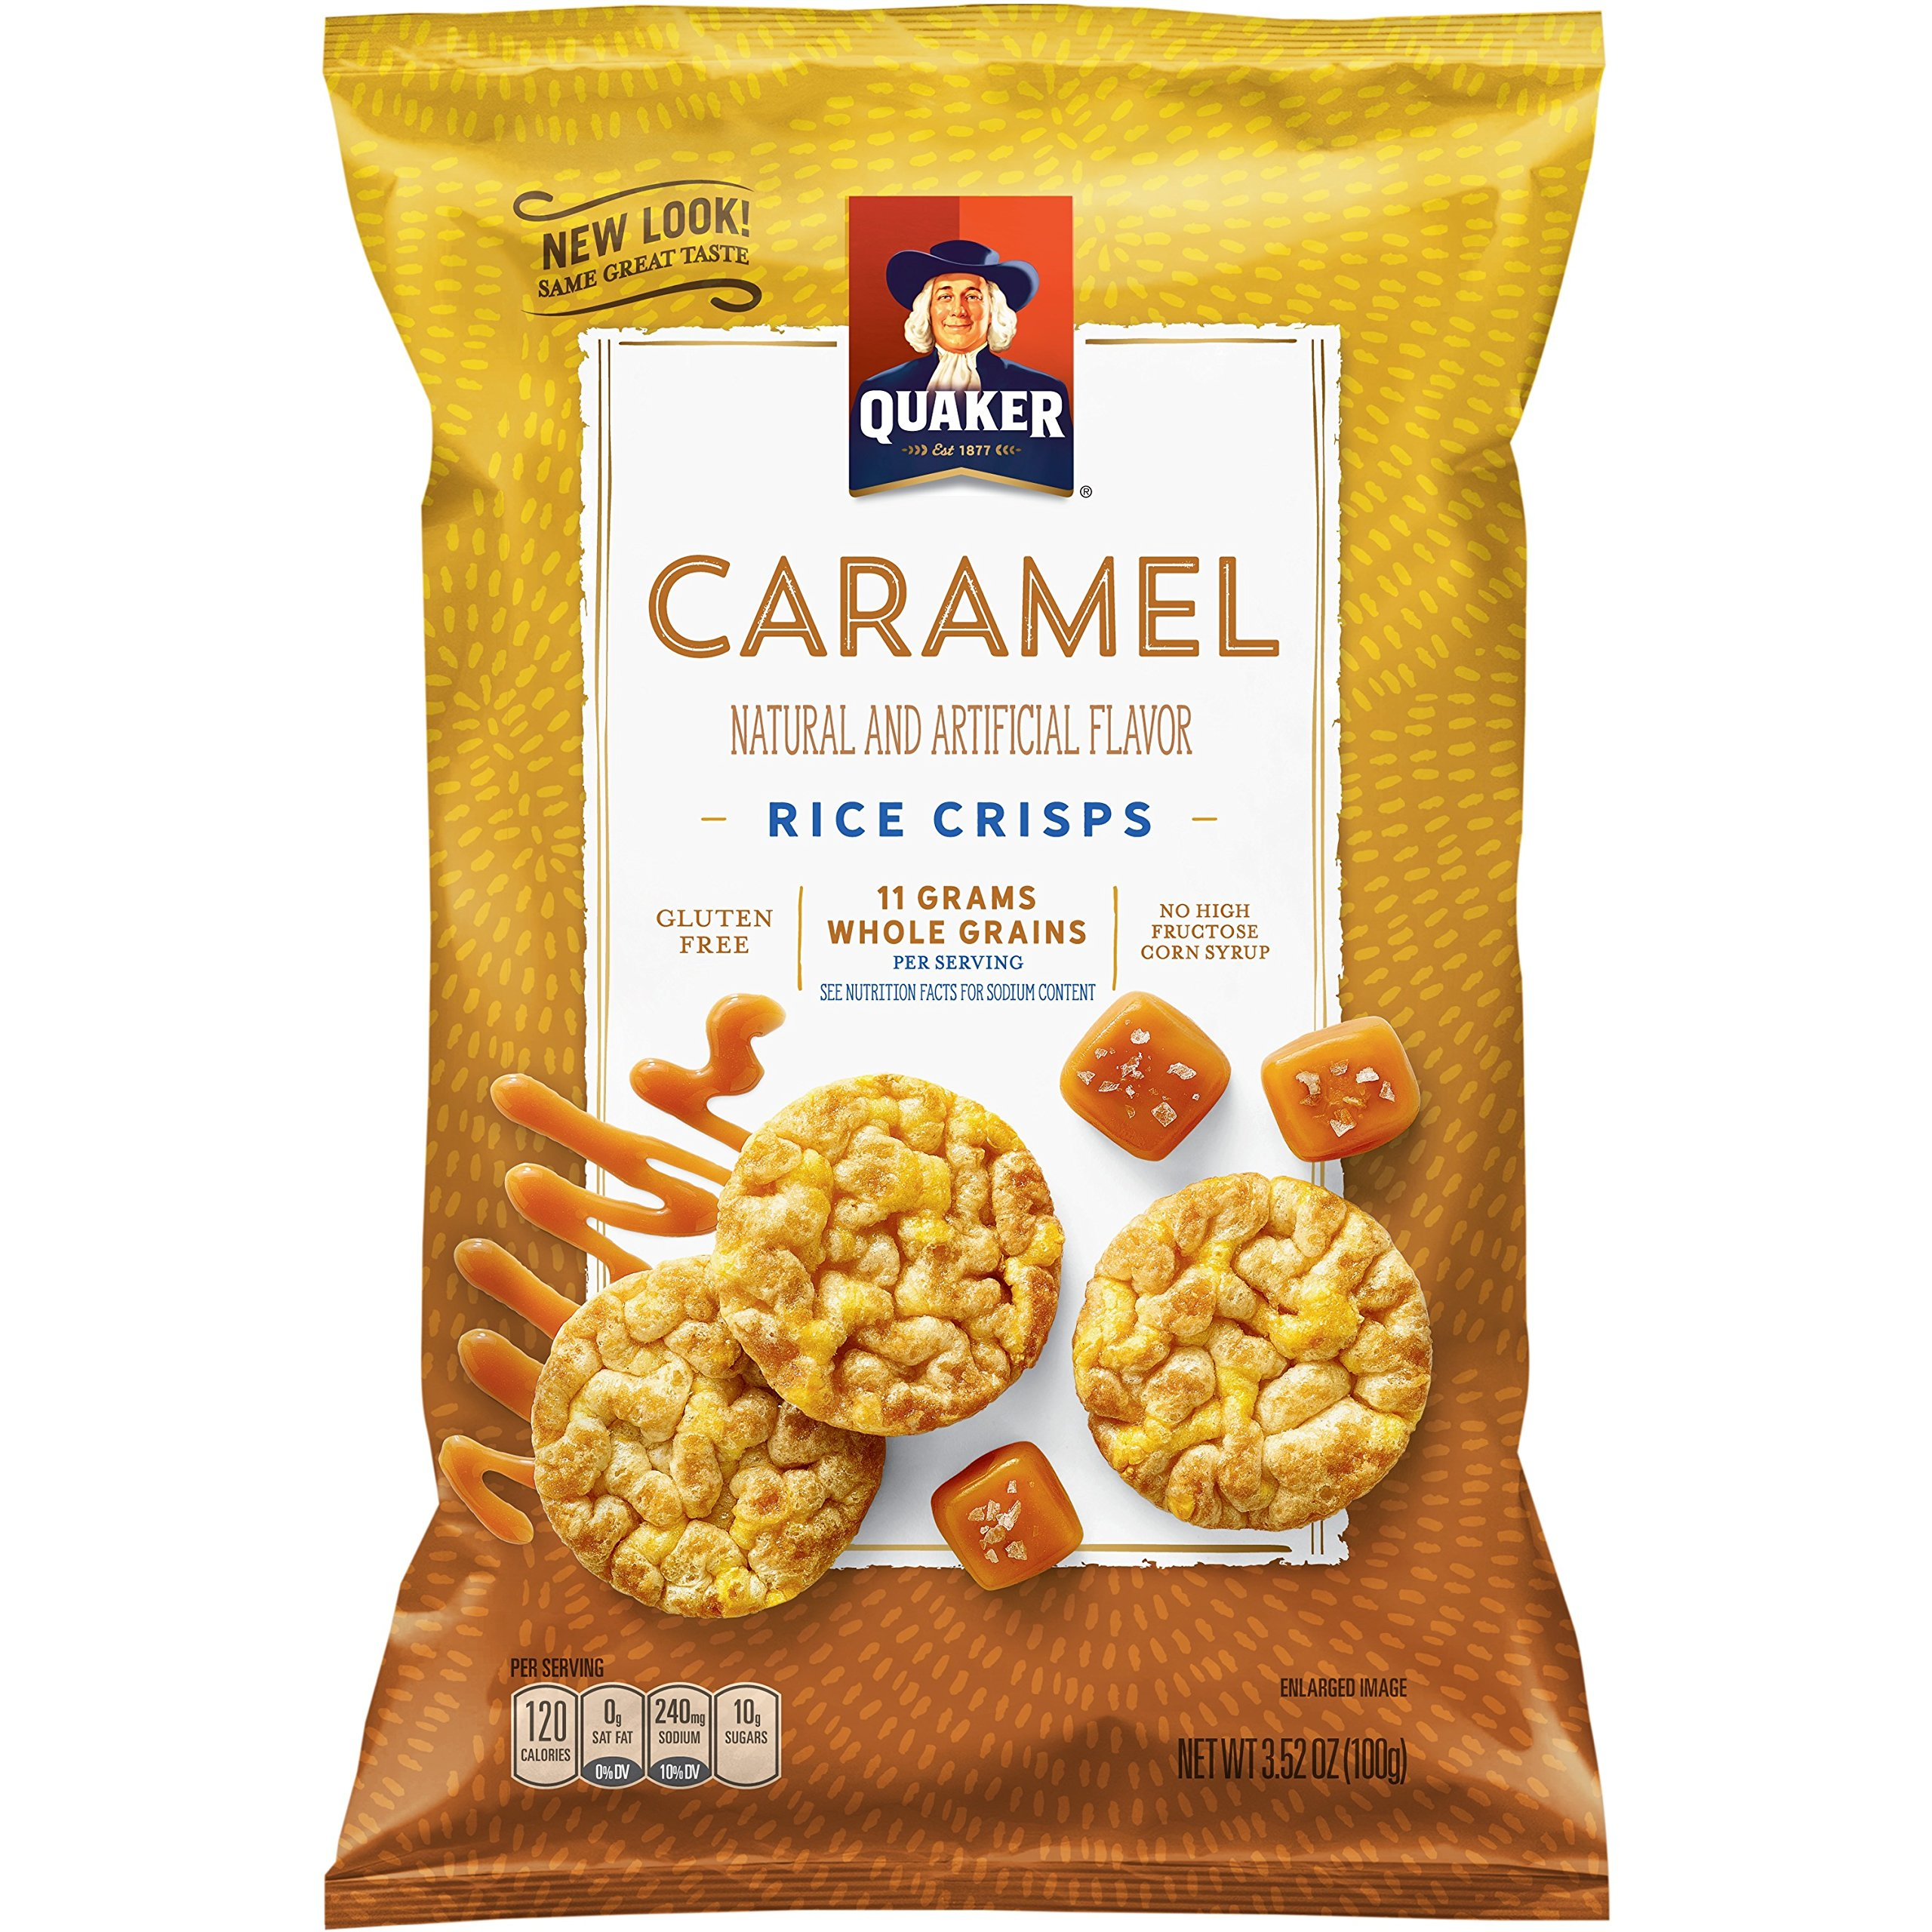 Quaker Rice Crisps, Caramel Corn, 7.04 oz Bags, 6 Count (Packaging May Vary) by Quaker